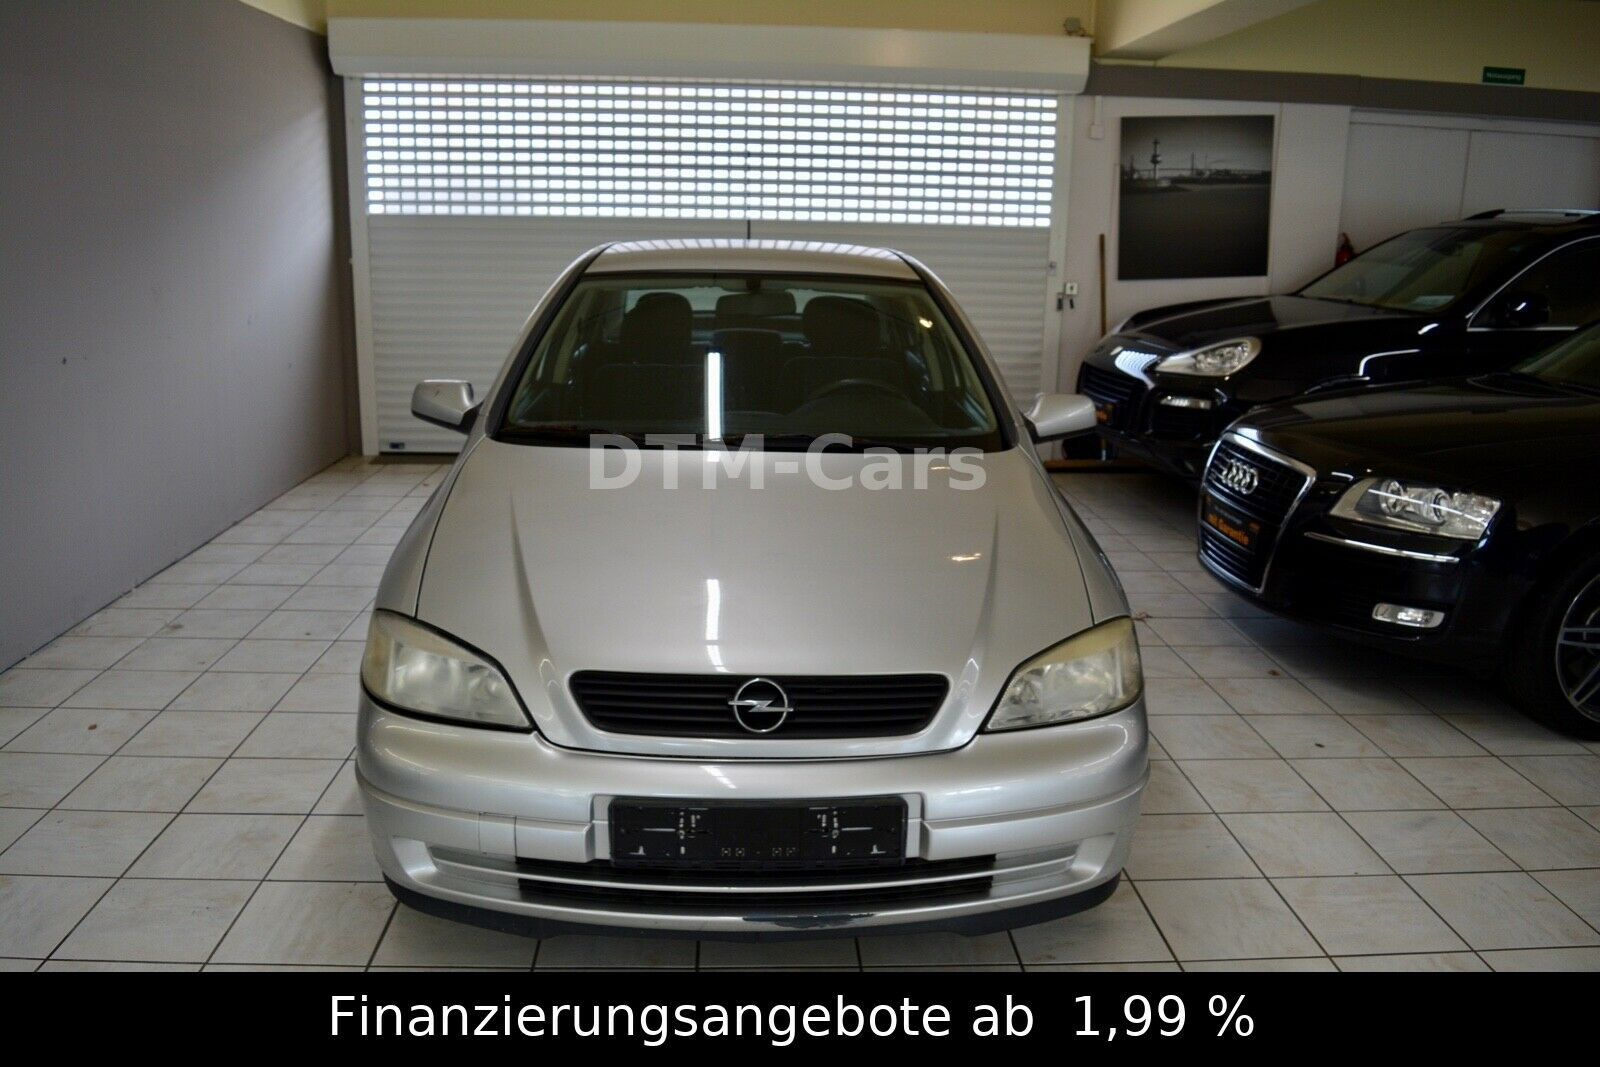 OPEL Astra G Lim. Edition 100, 1 Hand, Top Zustand